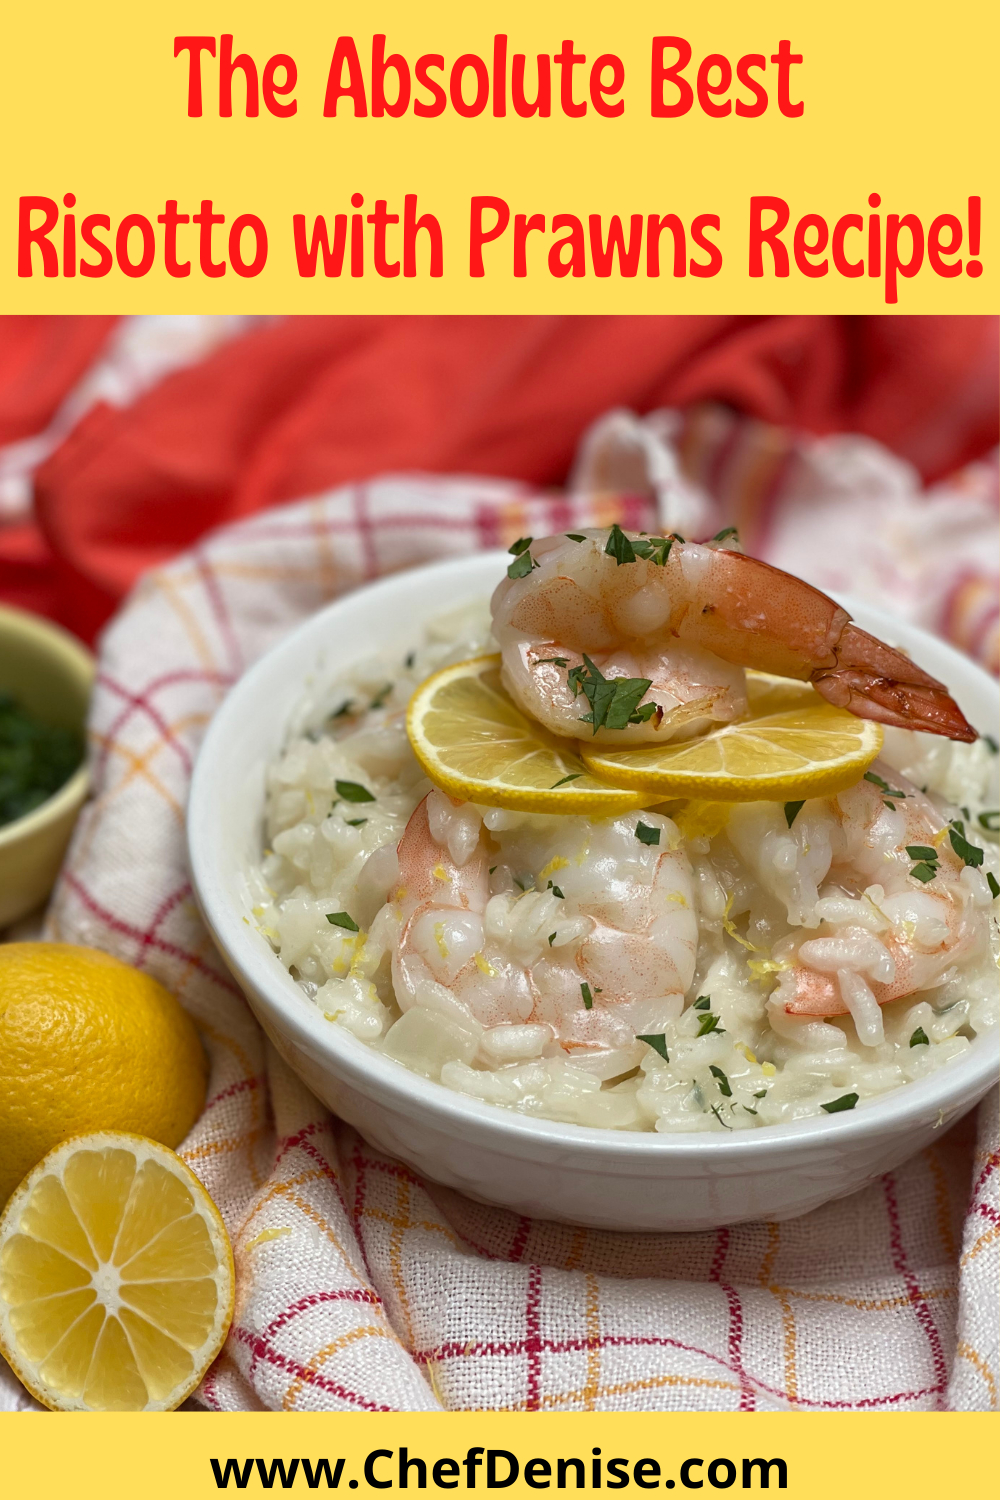 Pin for Risotto with Prawns